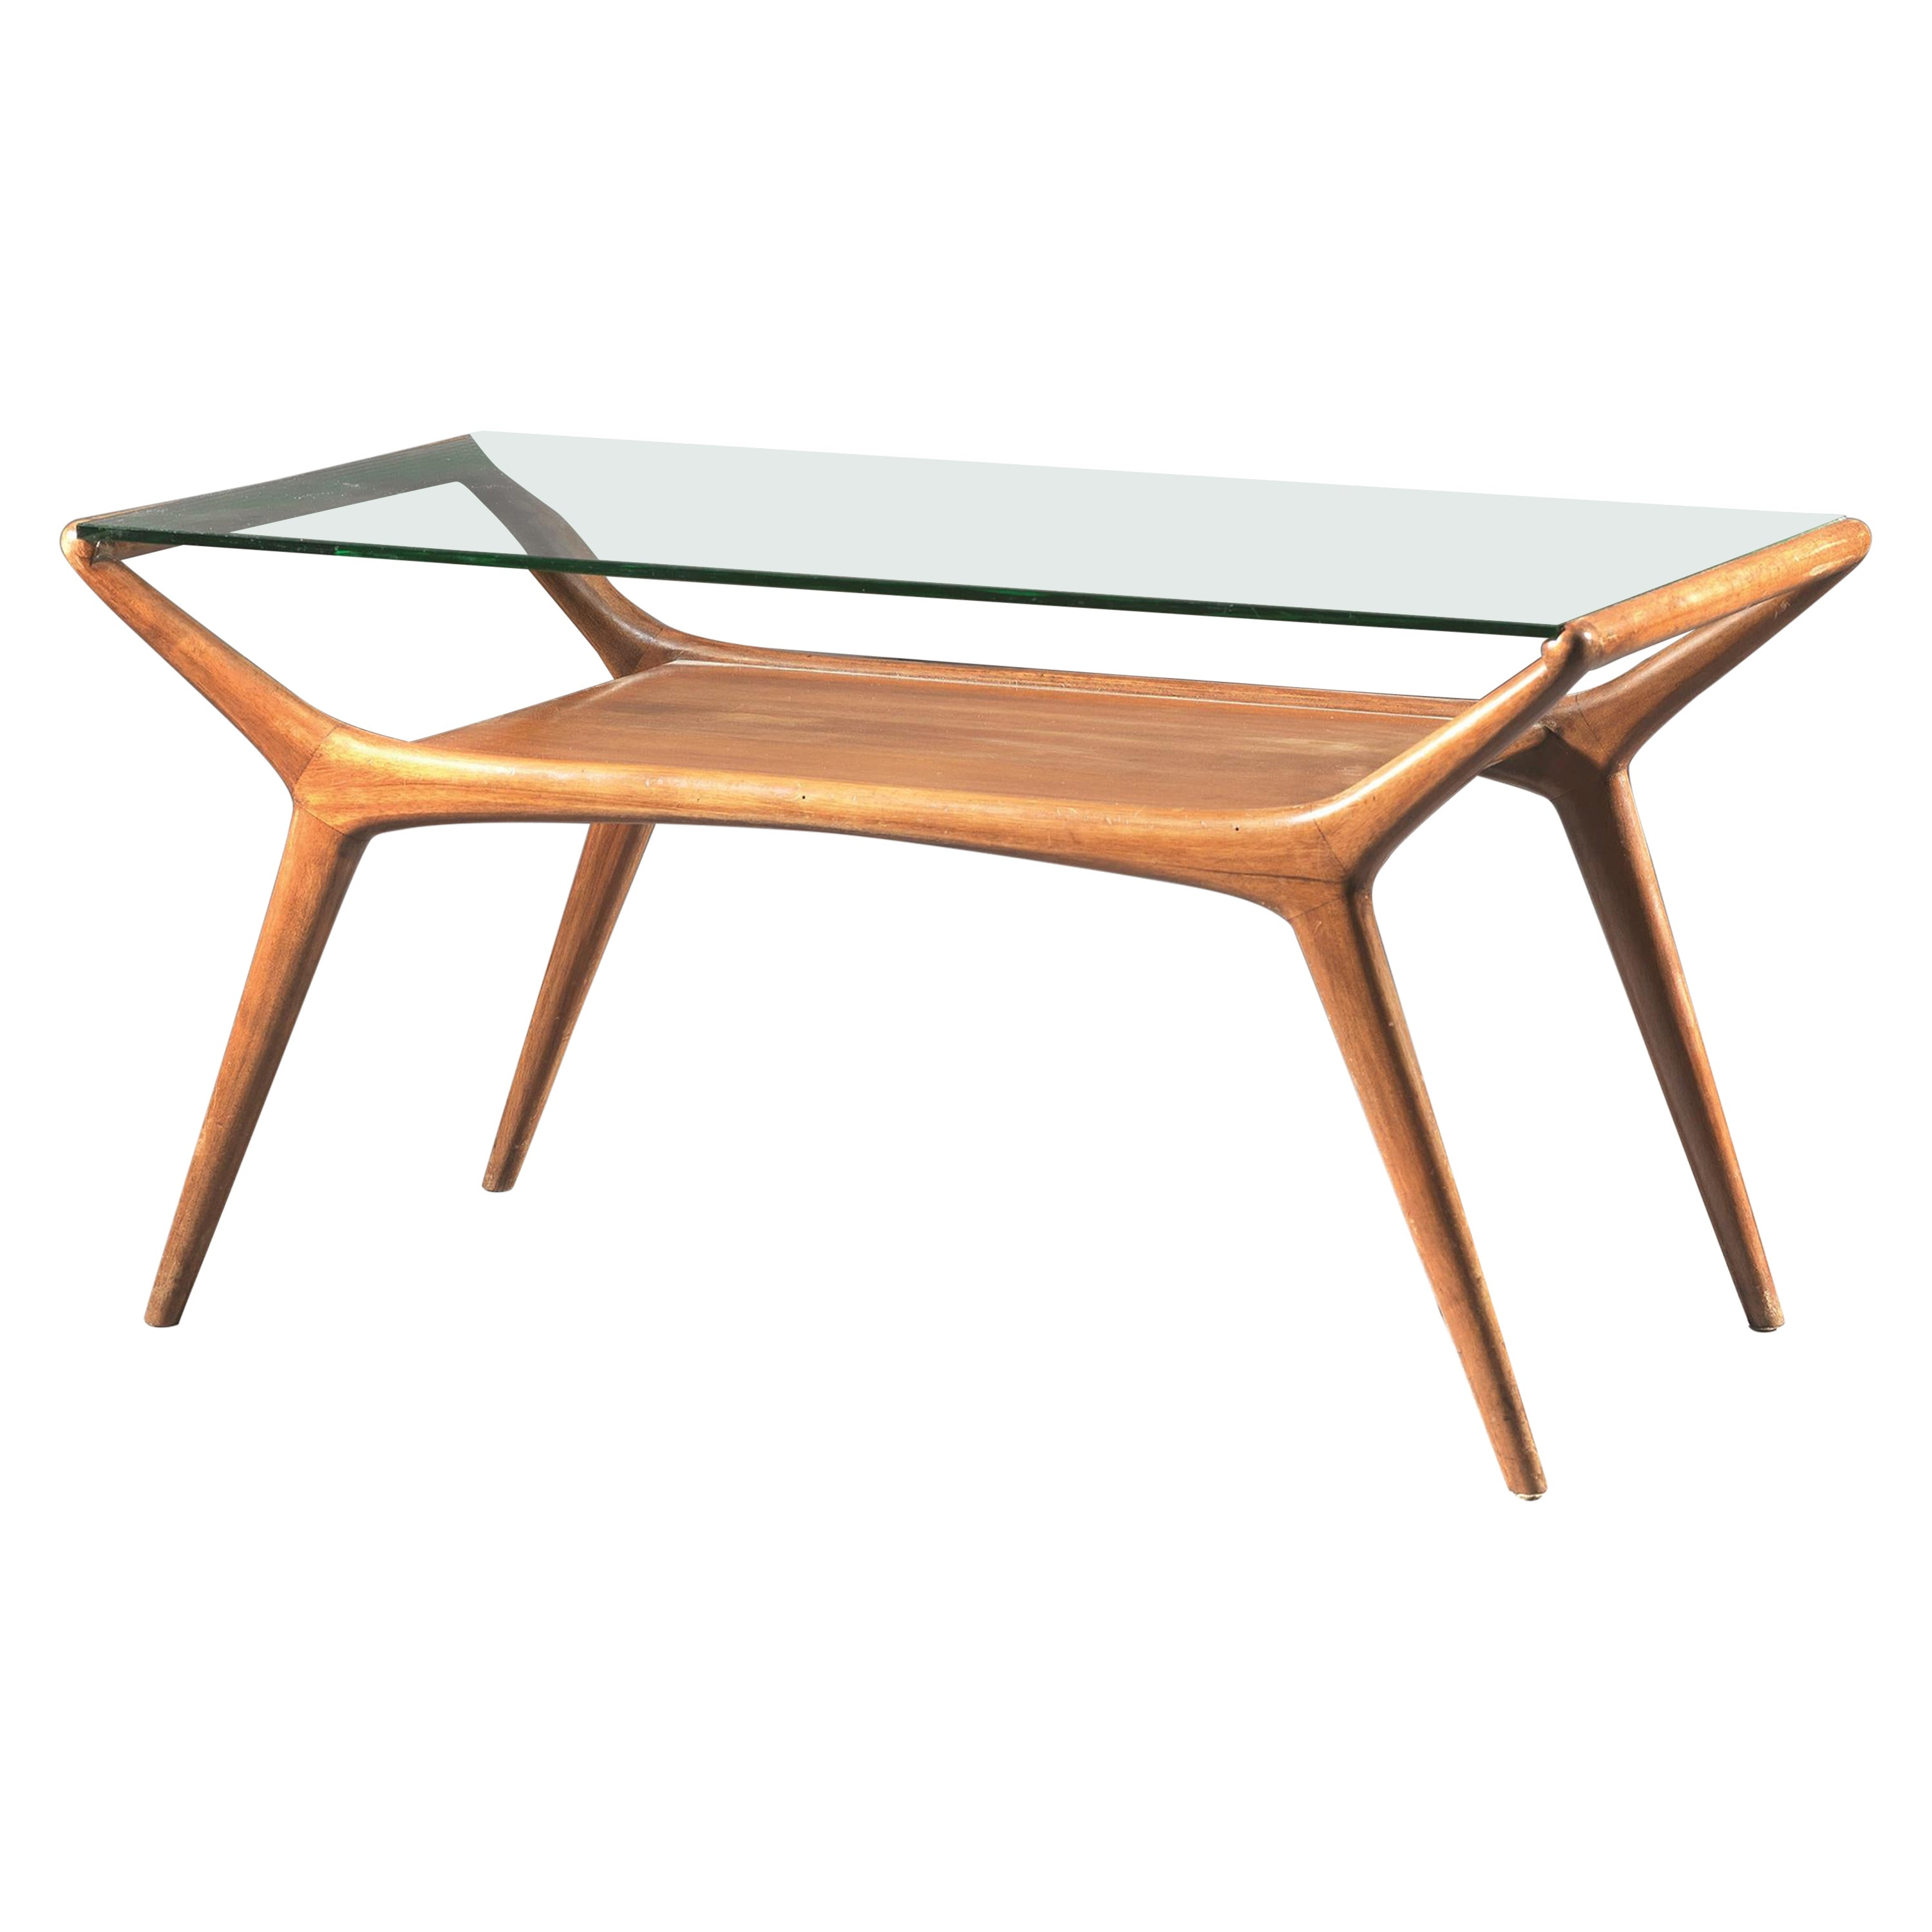 Ico Parisi Low Table with Glass Shelf Italian Manufacture, 1950s